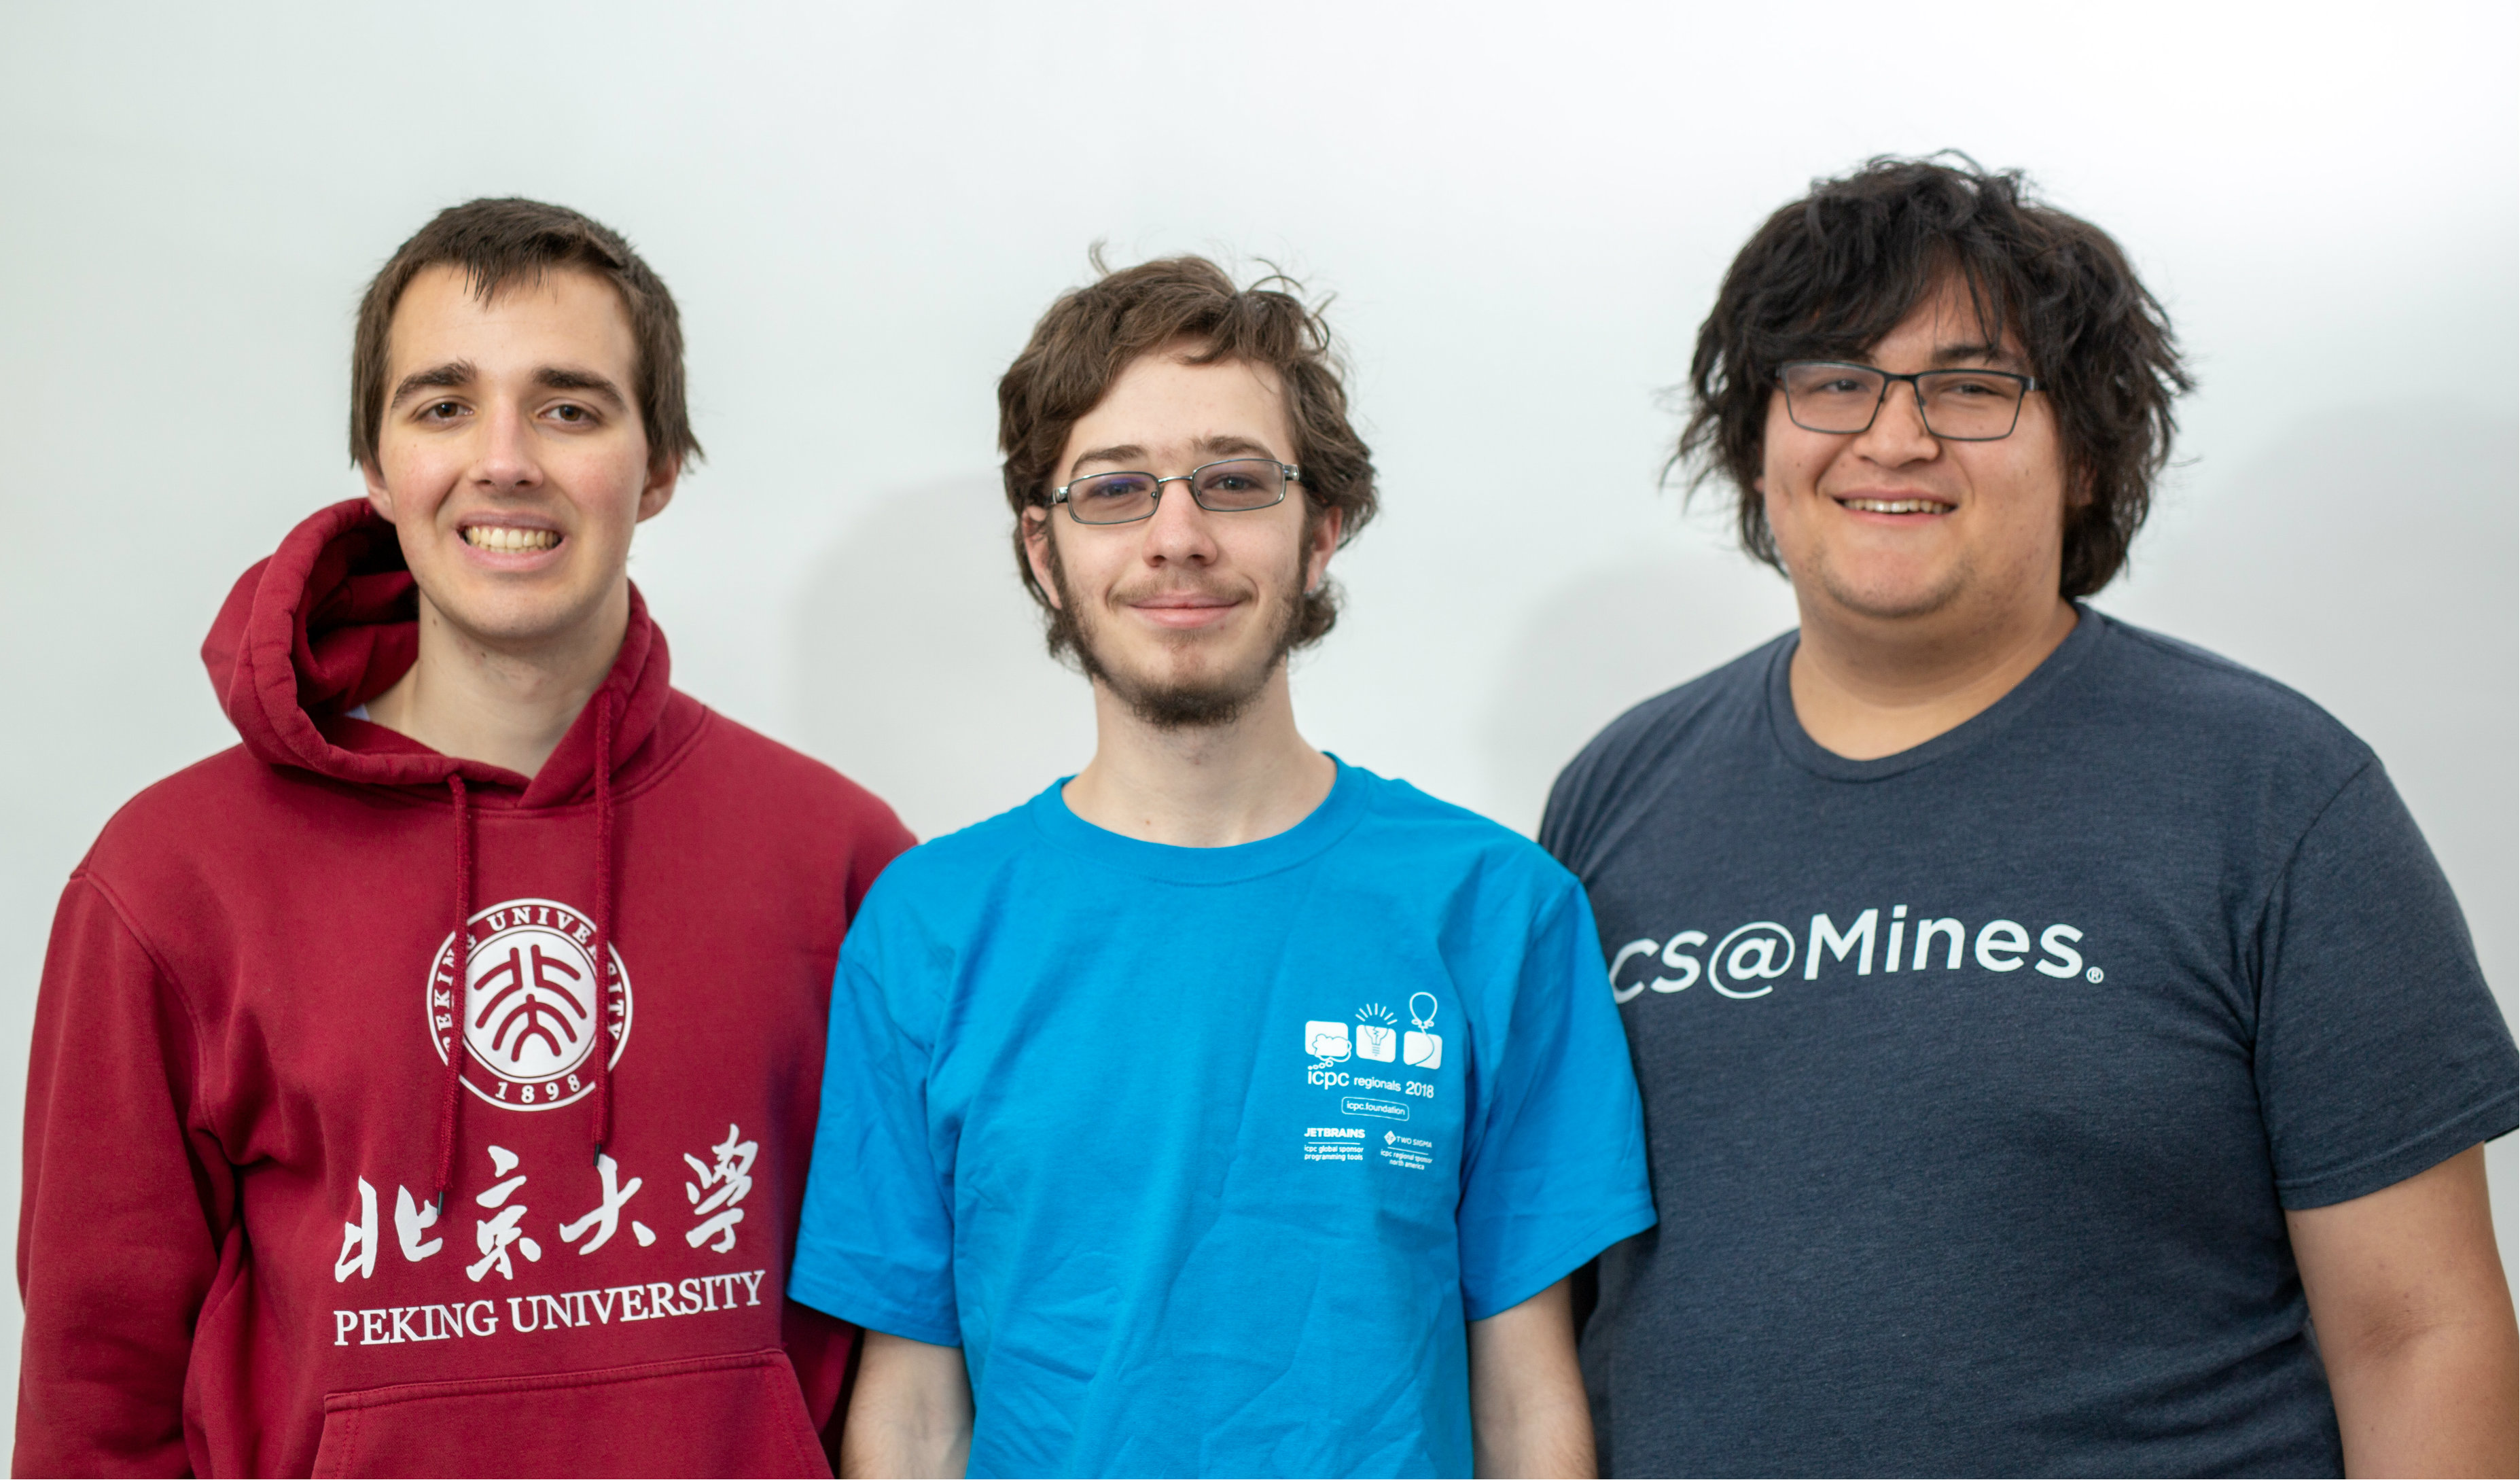 Mines students Matt Baldin, Joseph McKinsey and Sam Reinehr